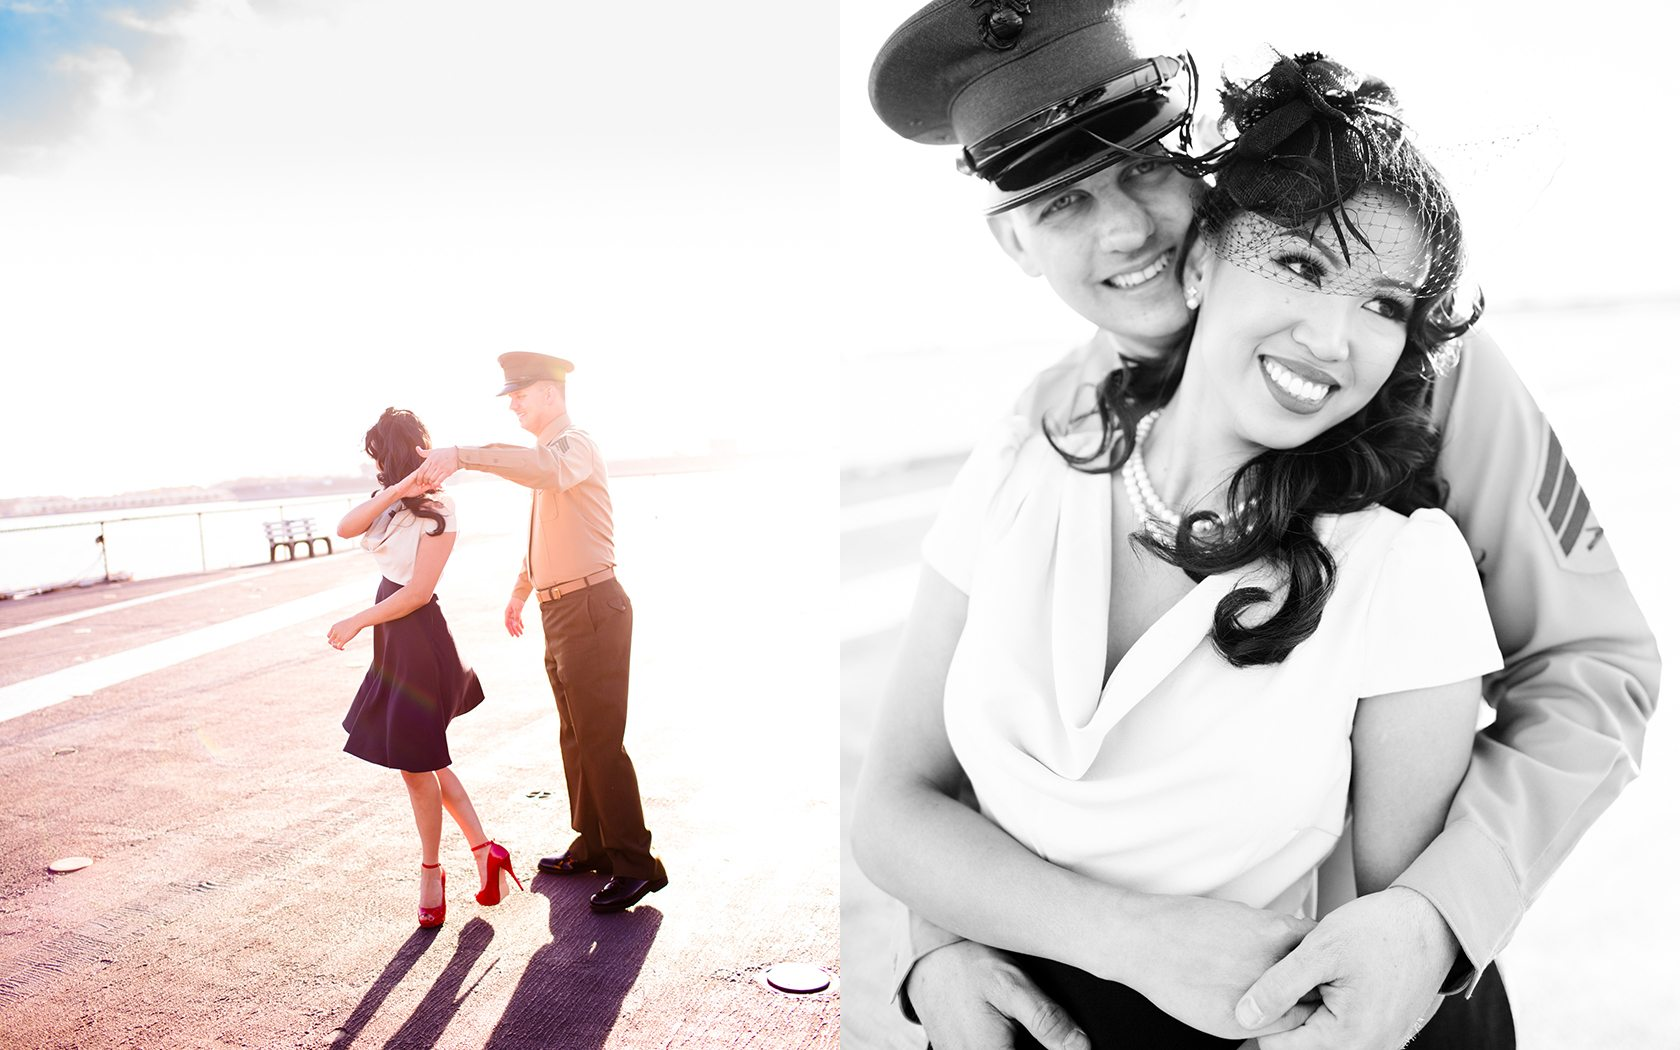 USS_Midway_Engagement_Session_13.jpg